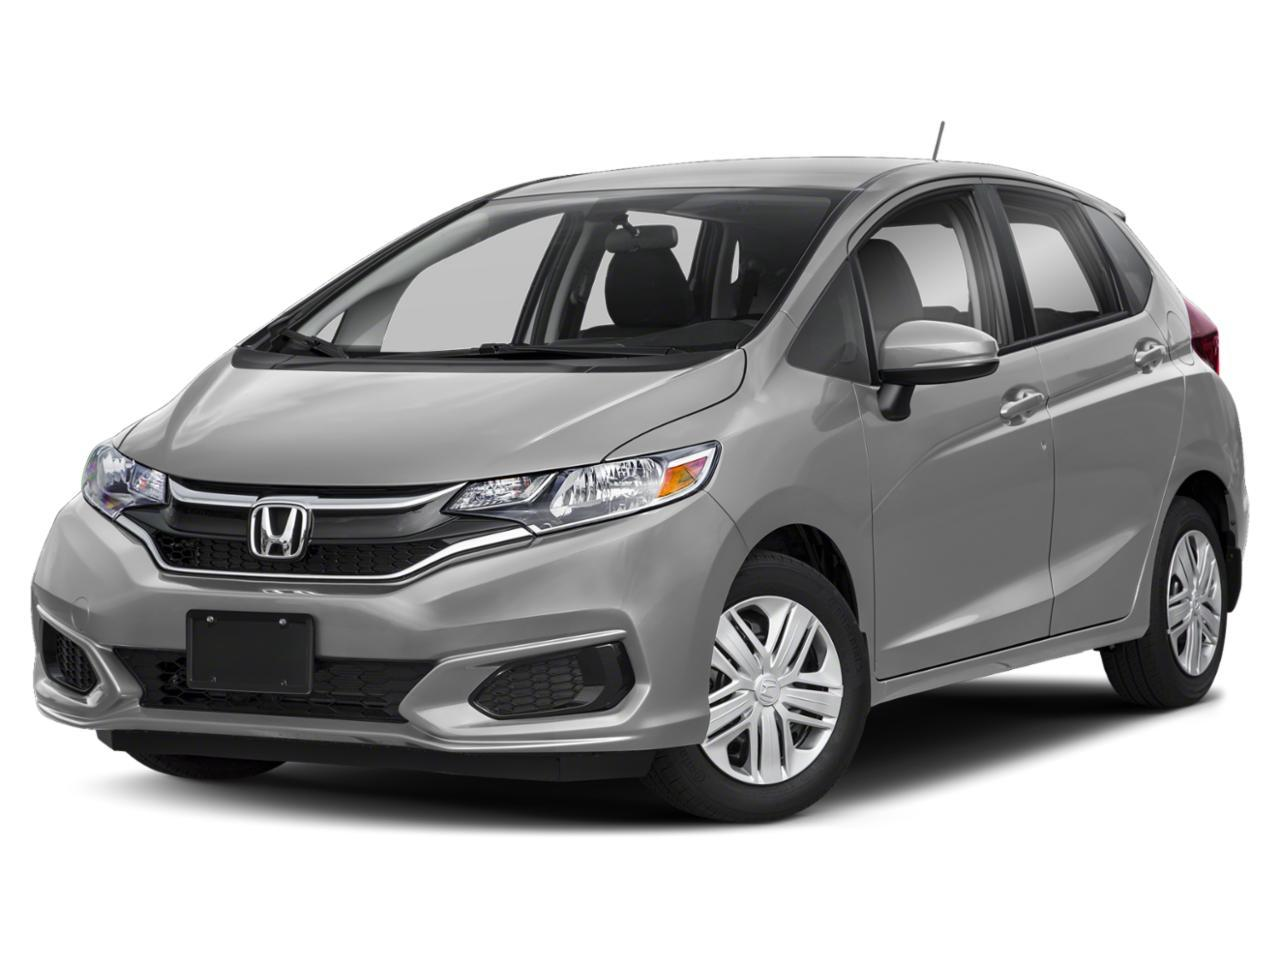 2020 Honda Fit Vehicle Photo in Oshkosh, WI 54904